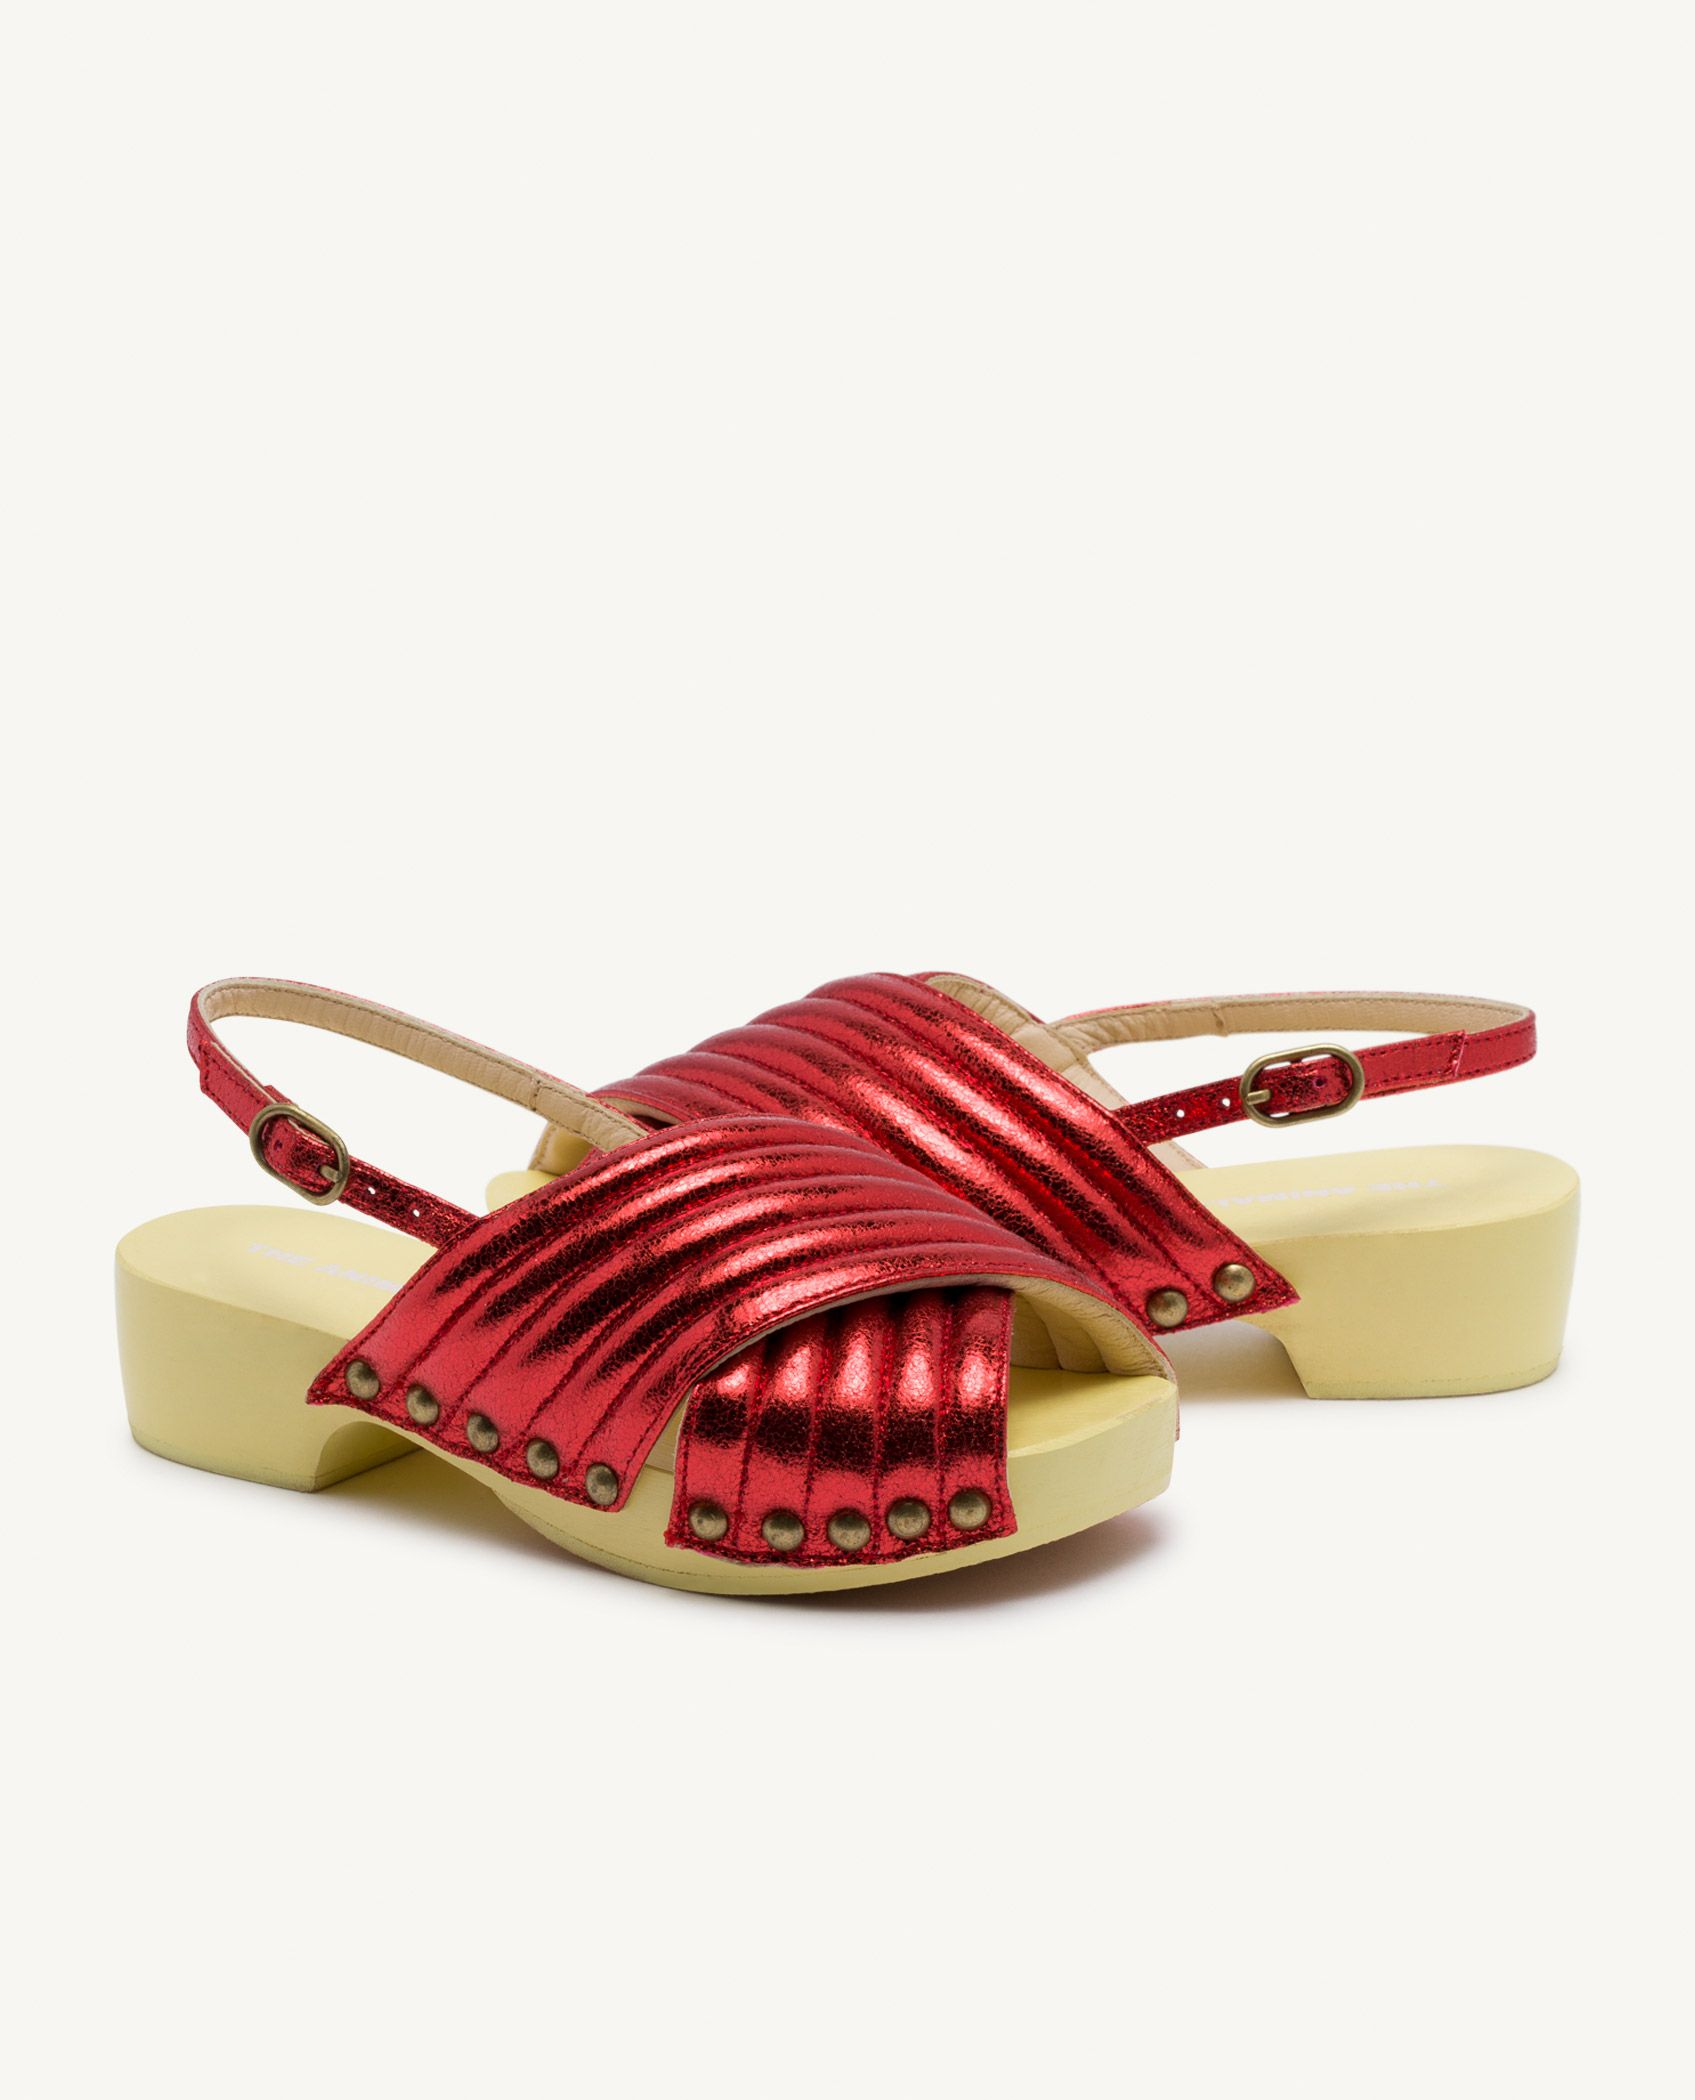 Red Clog Sandals img-3